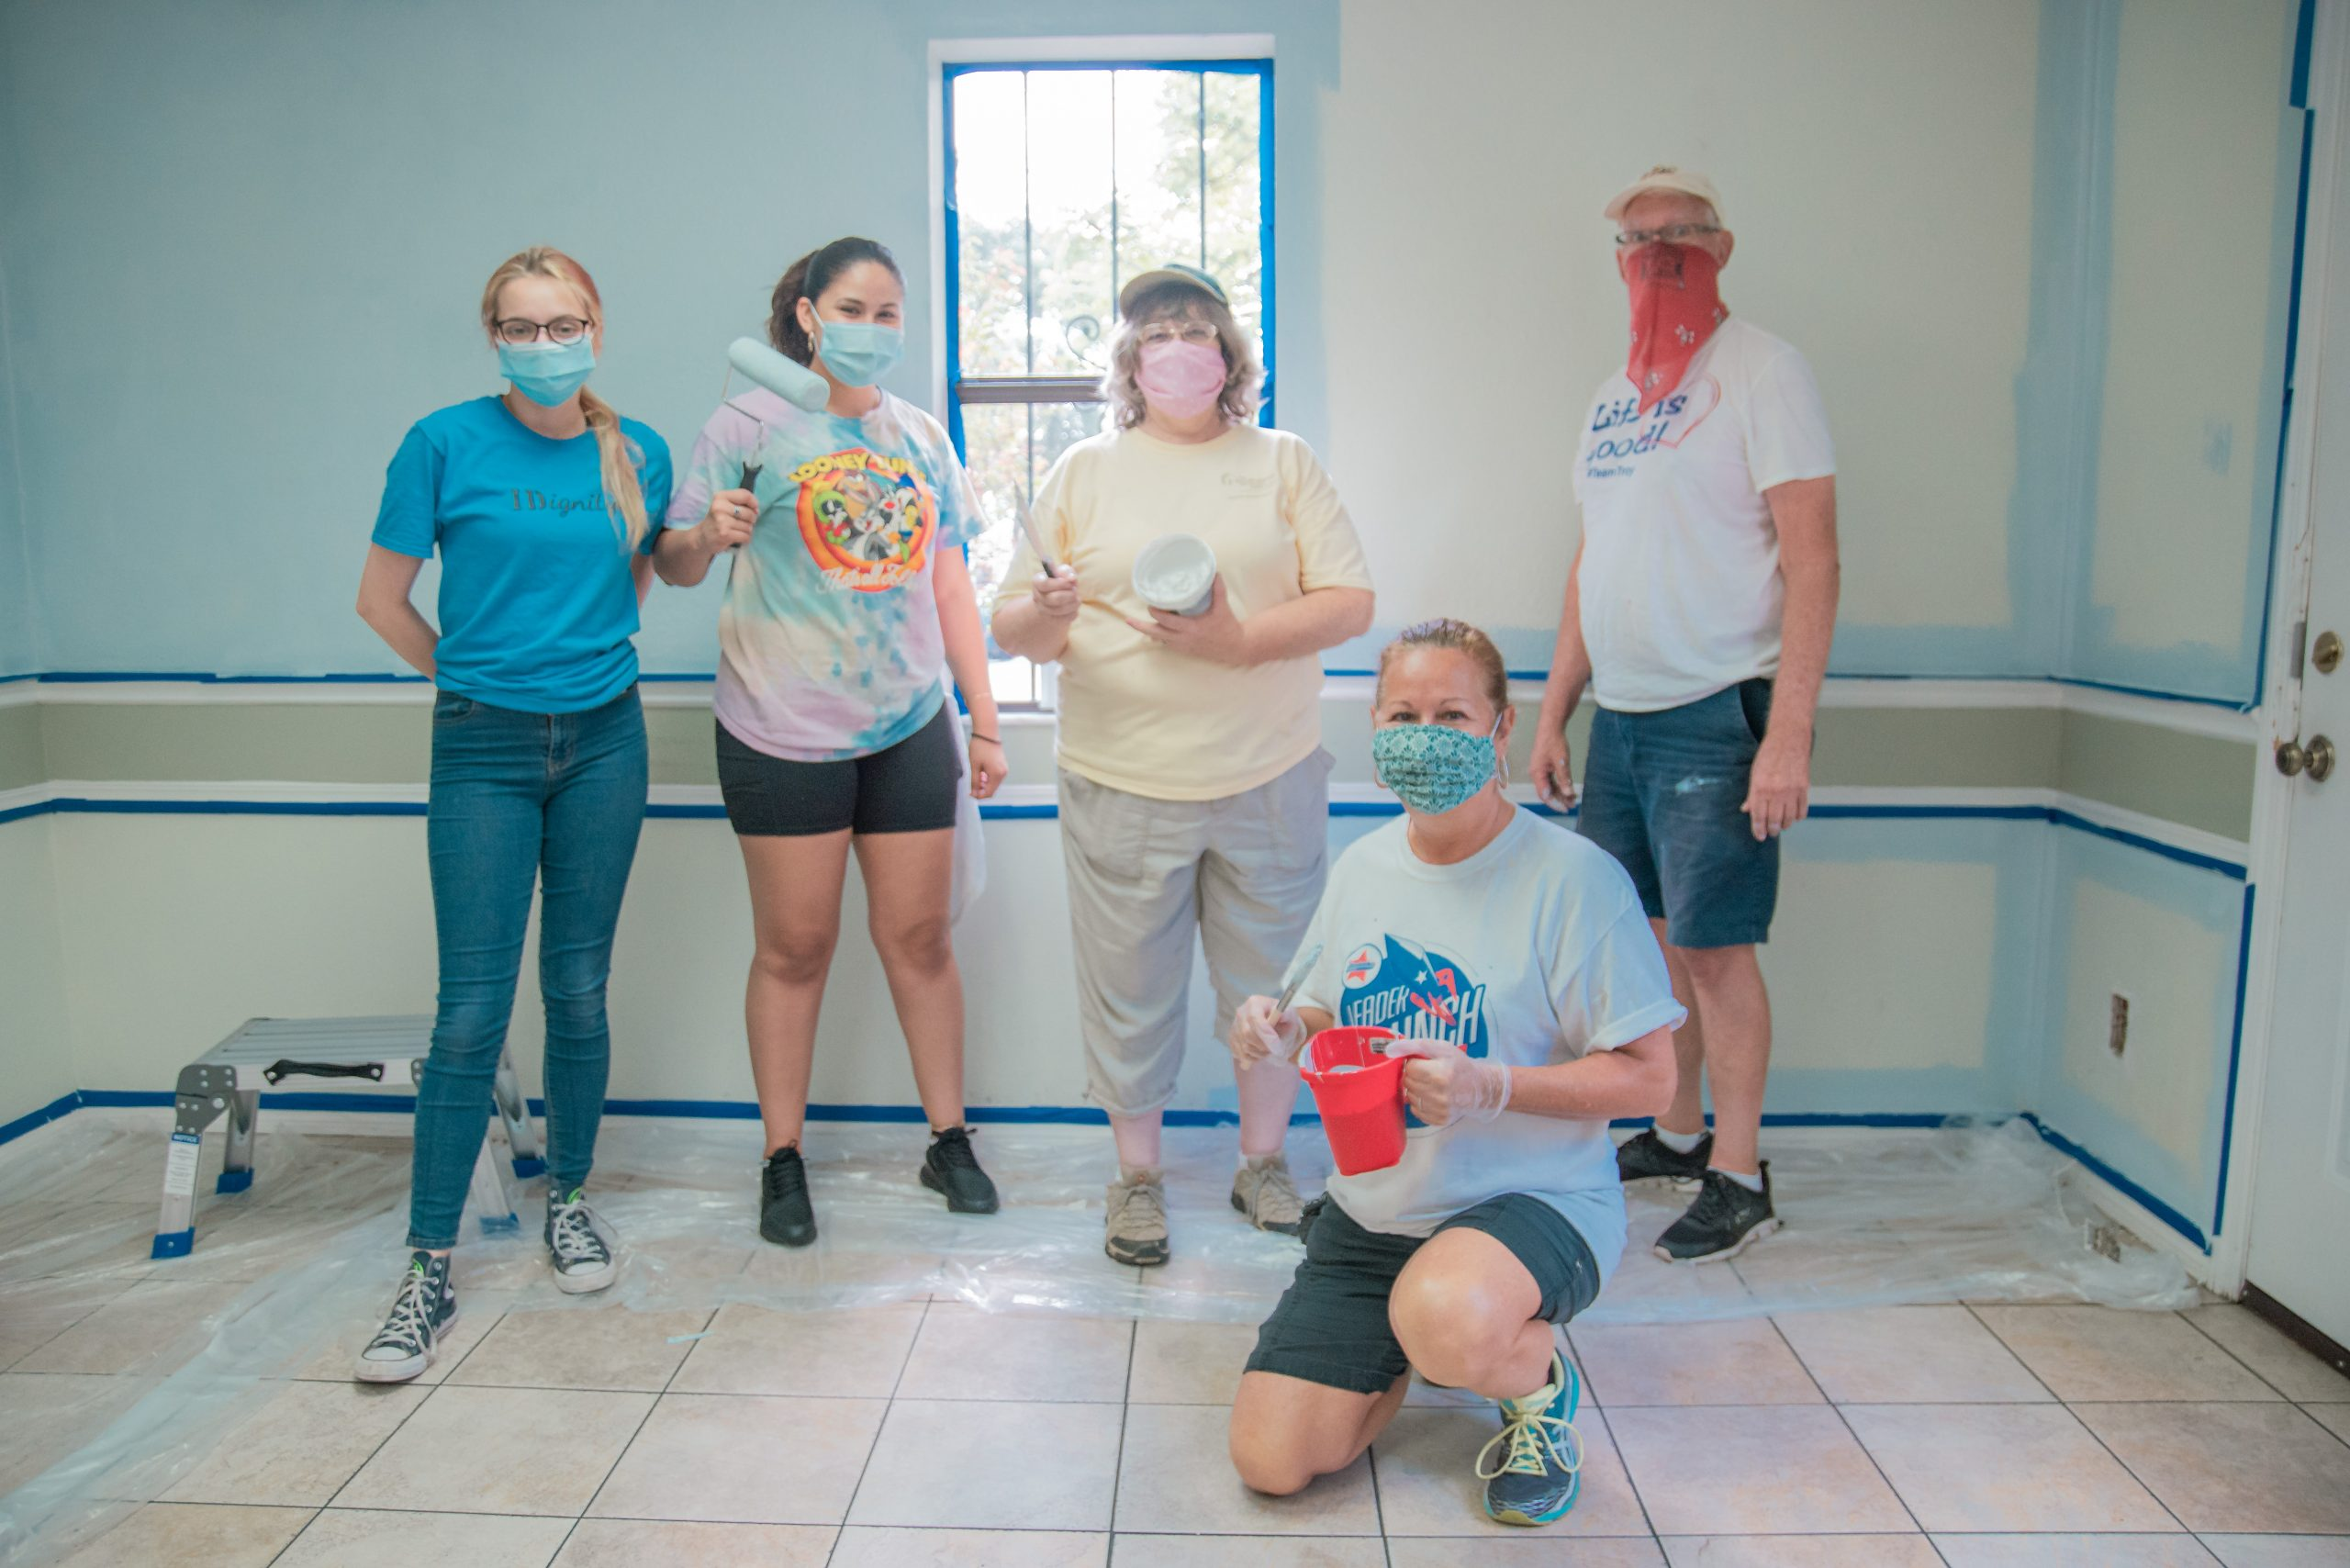 The volunteer painting team